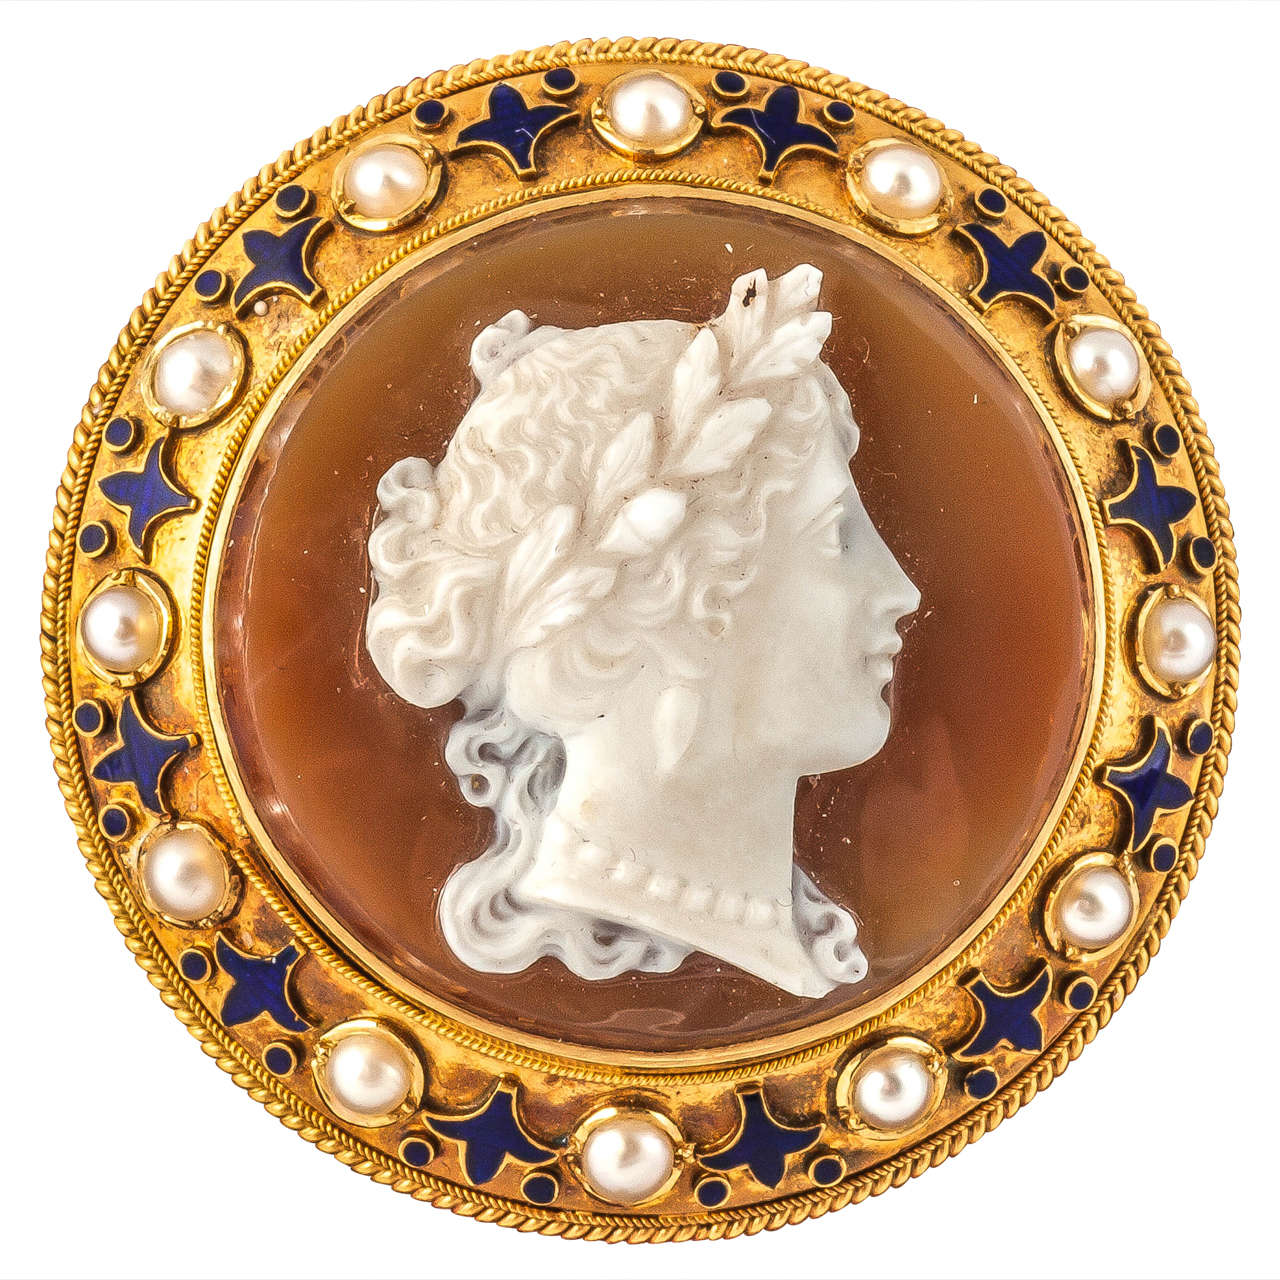 Hardstone Agate Cameo Gold Brooch At 1stdibs